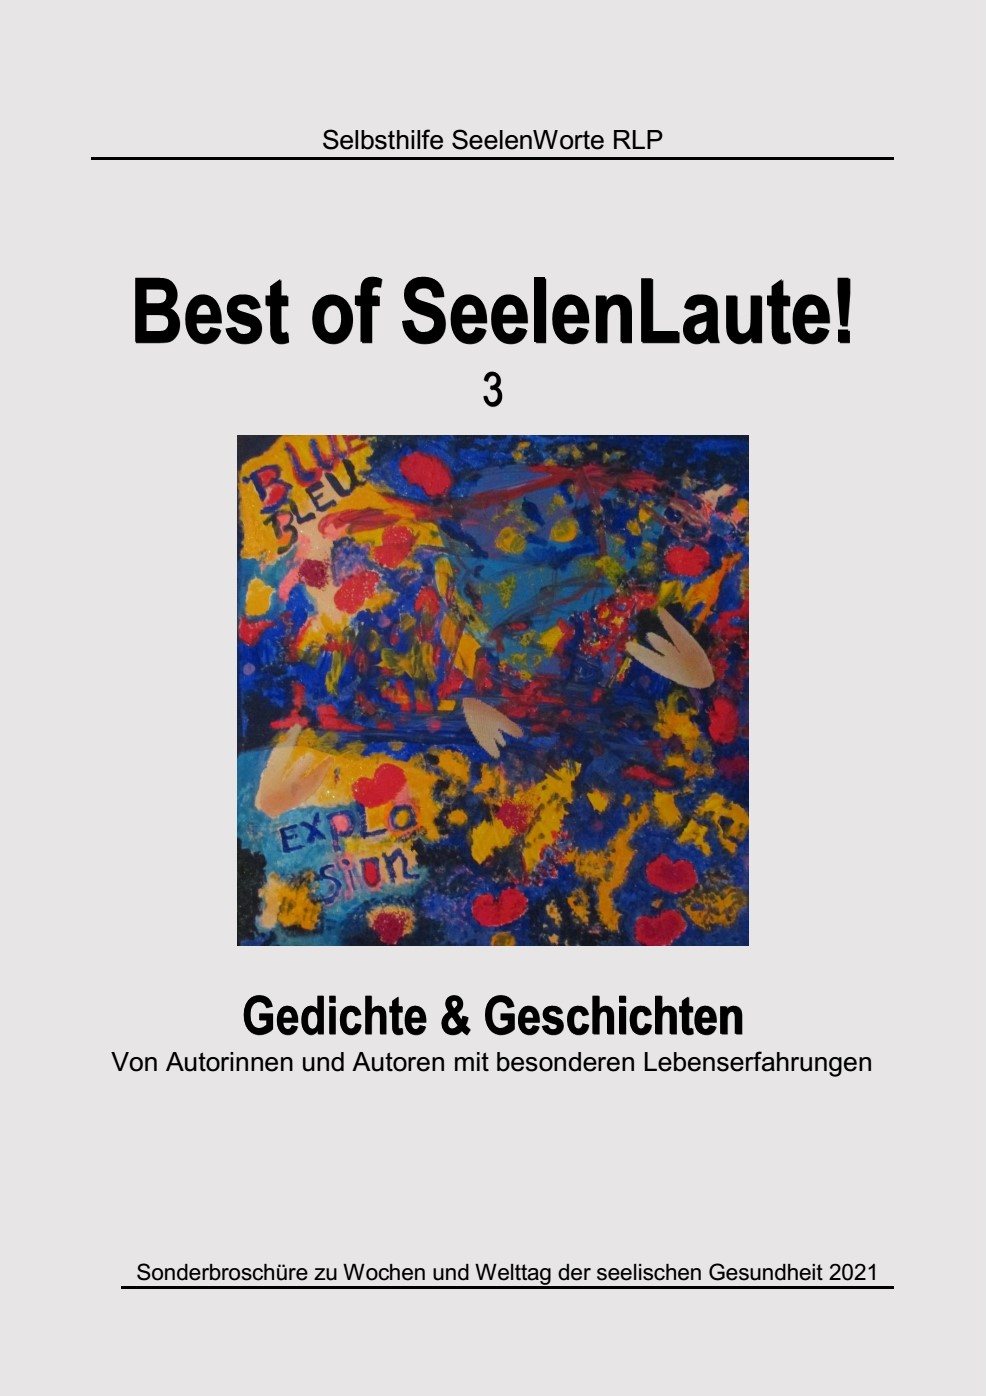 Best of SeelenLaute! 3 erschienen